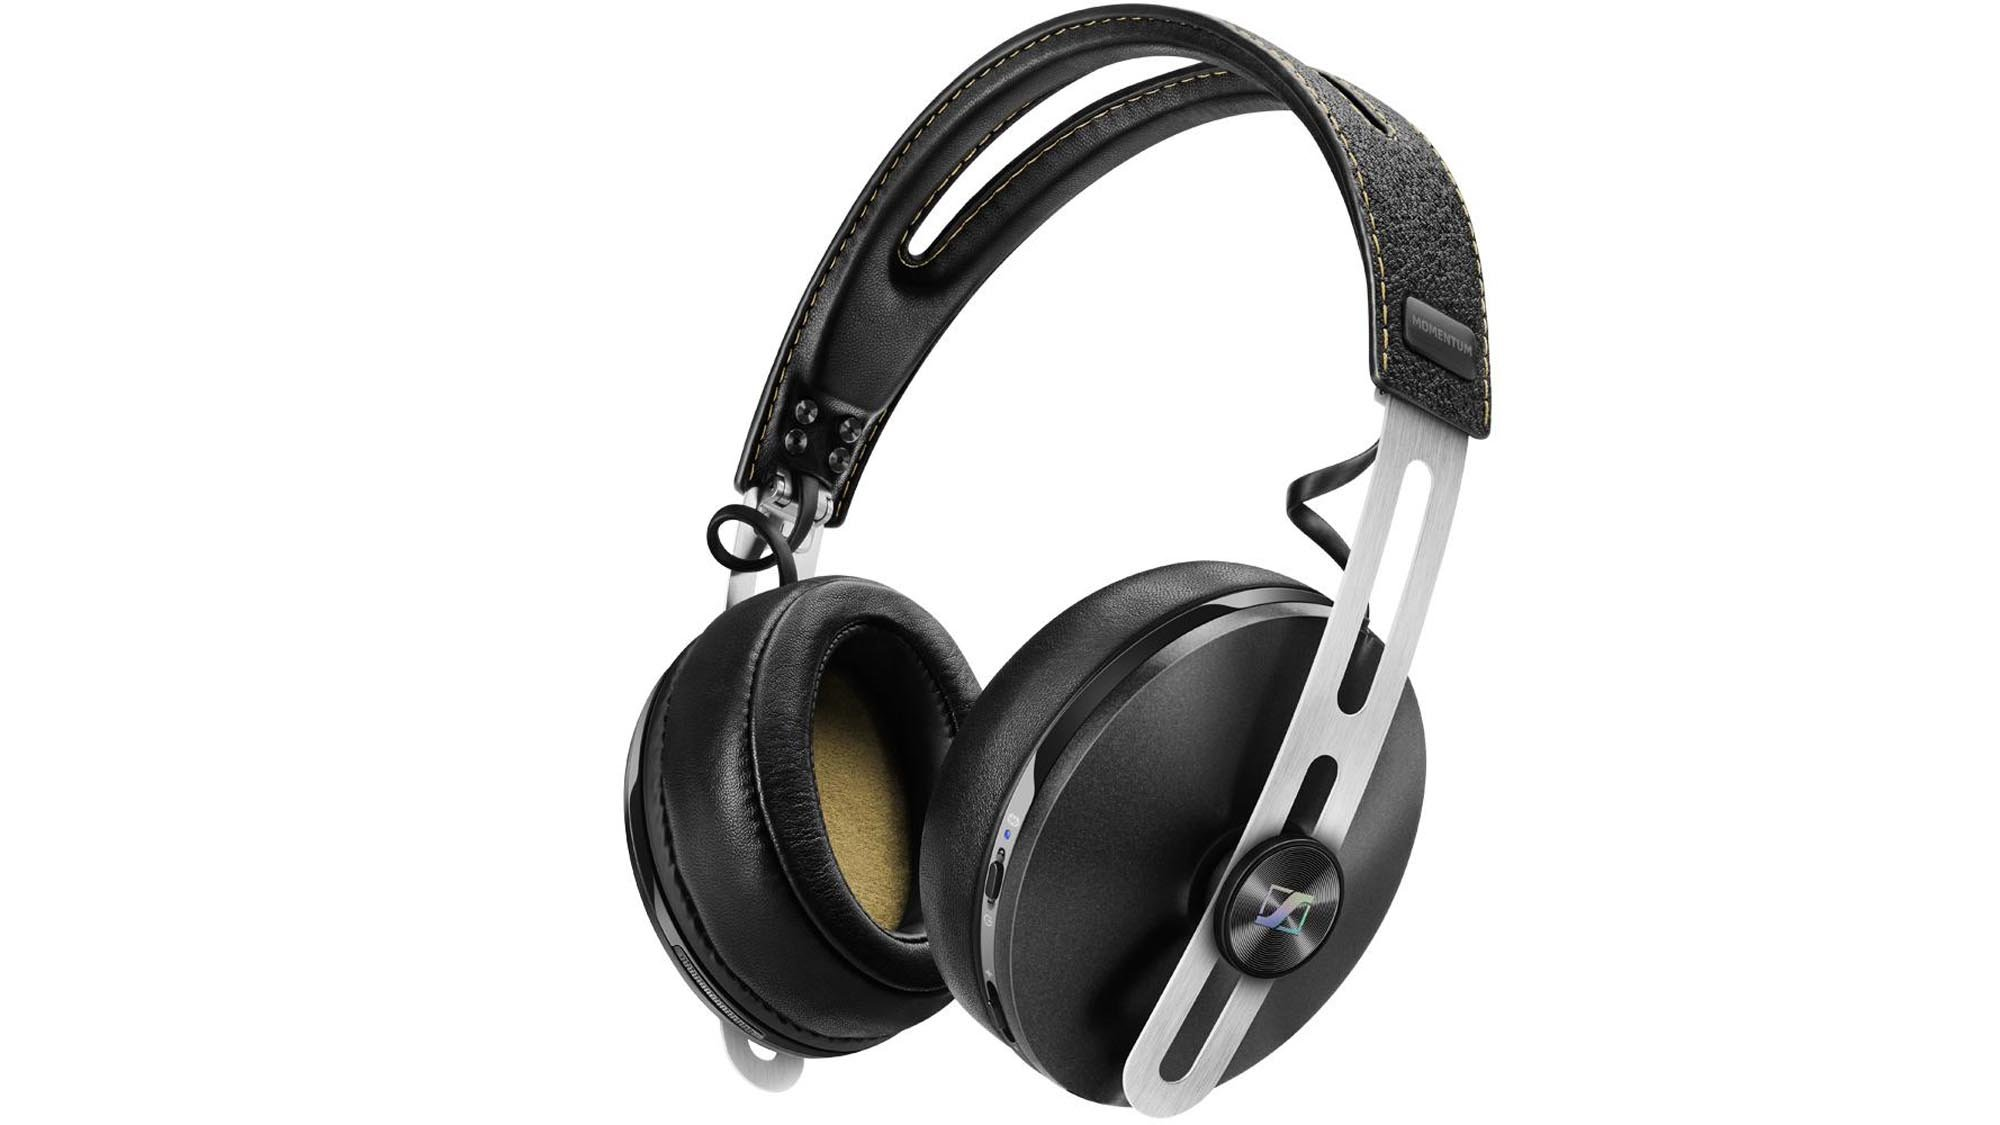 Noise-Canceling Headphones – Best Buy